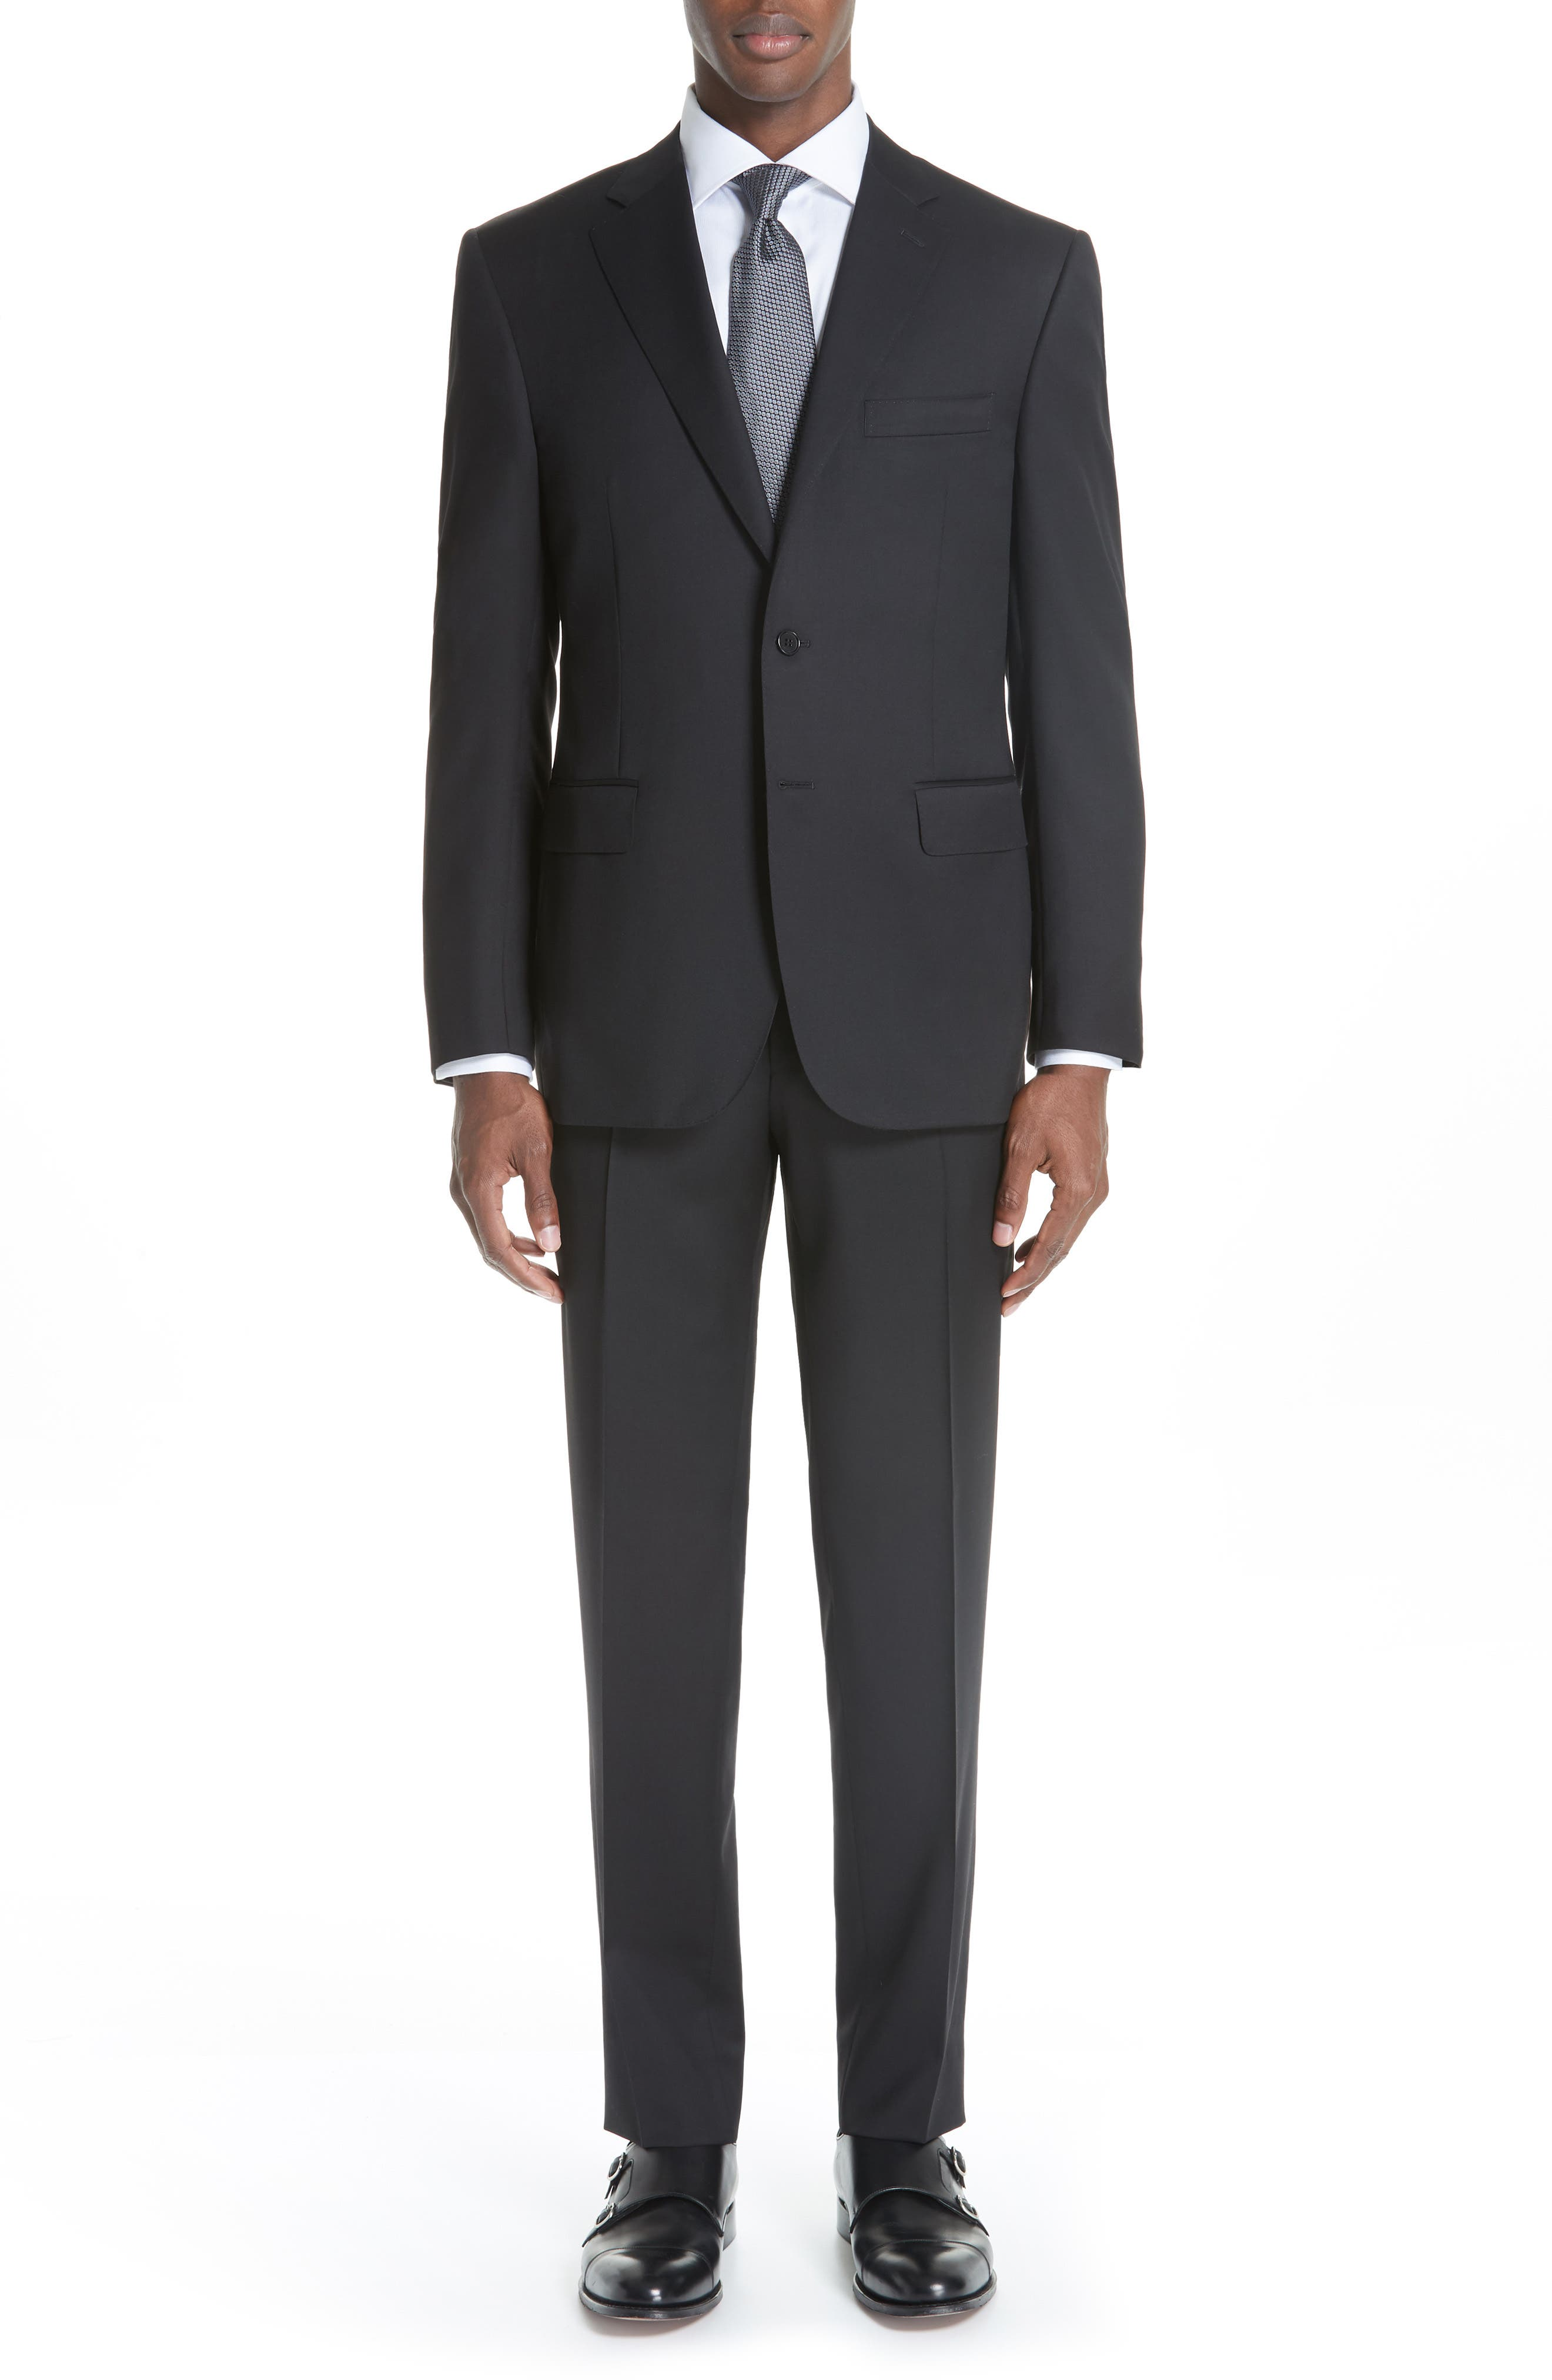 Canali Wool Solid Suit Fit Classic CwqtTC4rx